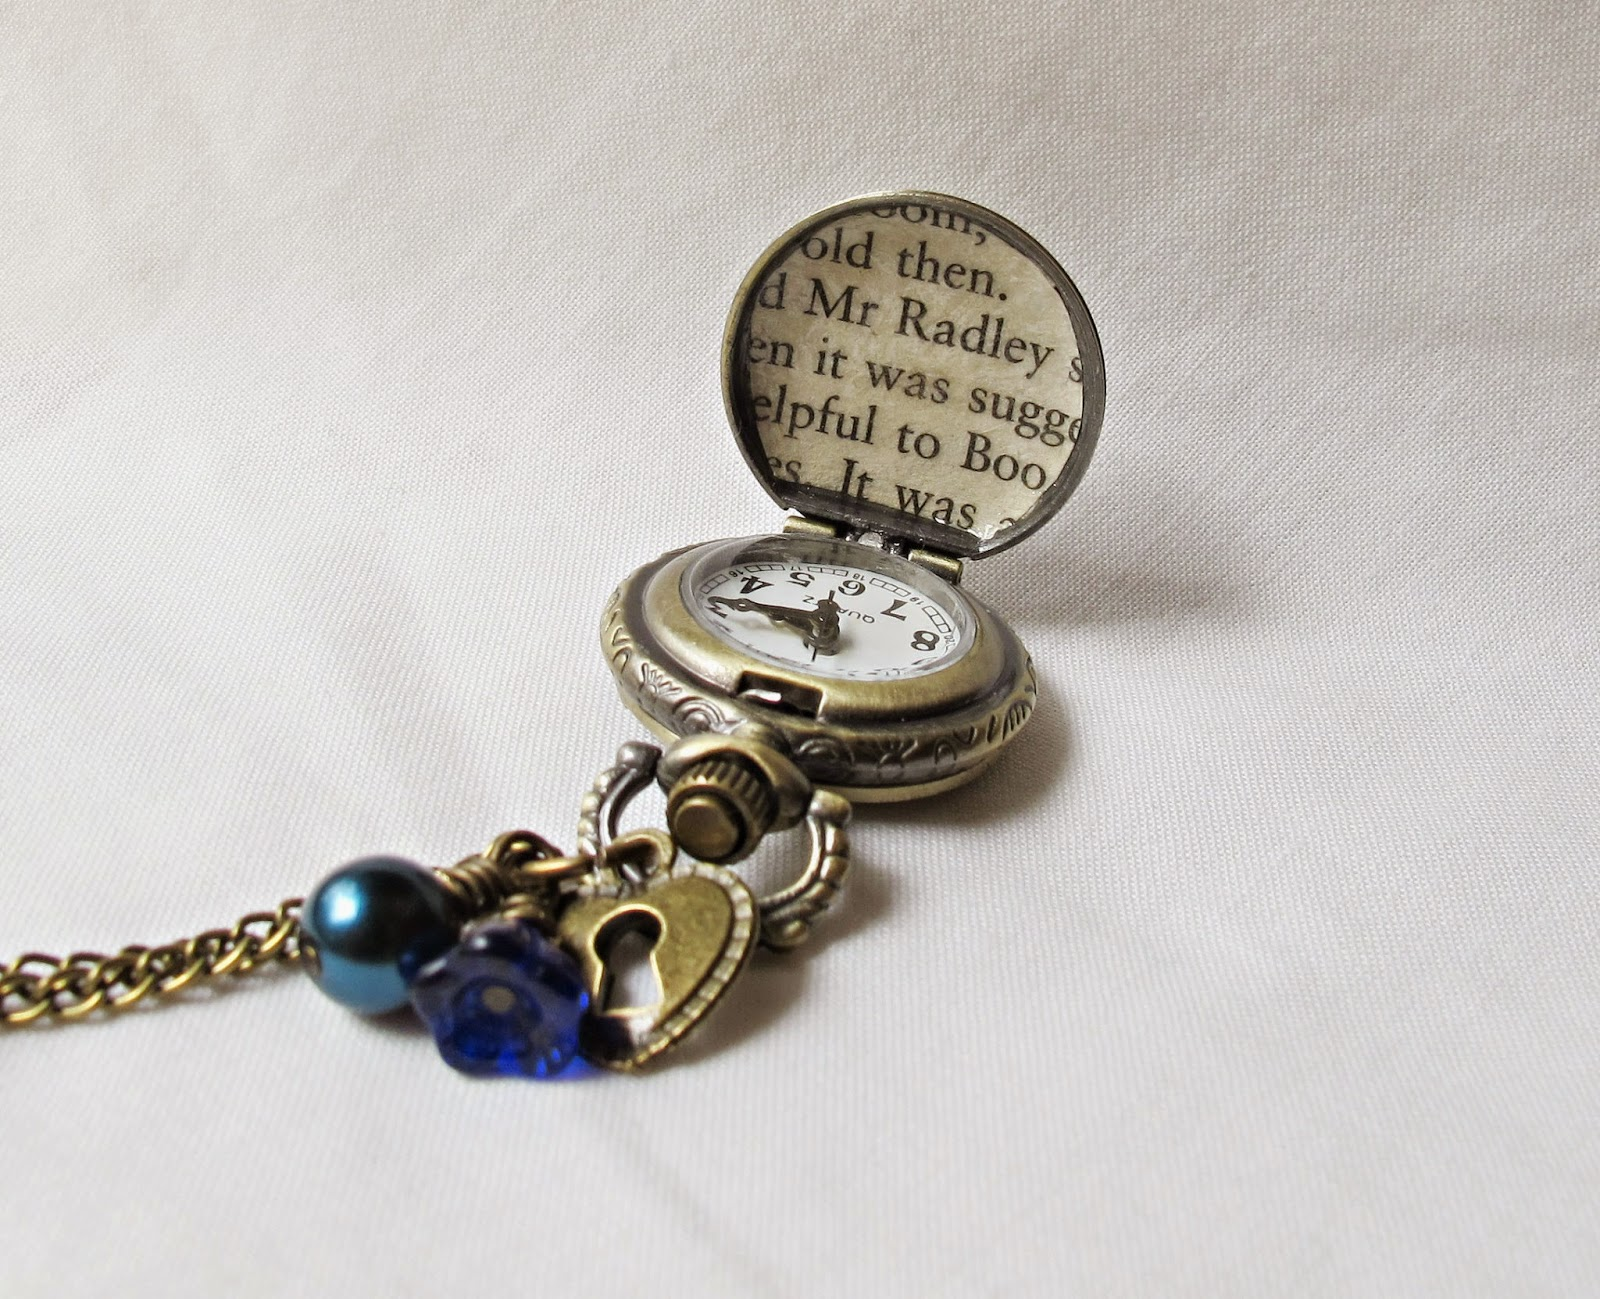 image pocketwatch necklace boo radley to kill a mockingbird harper lee blue navy cobalt lock two cheeky monkeys